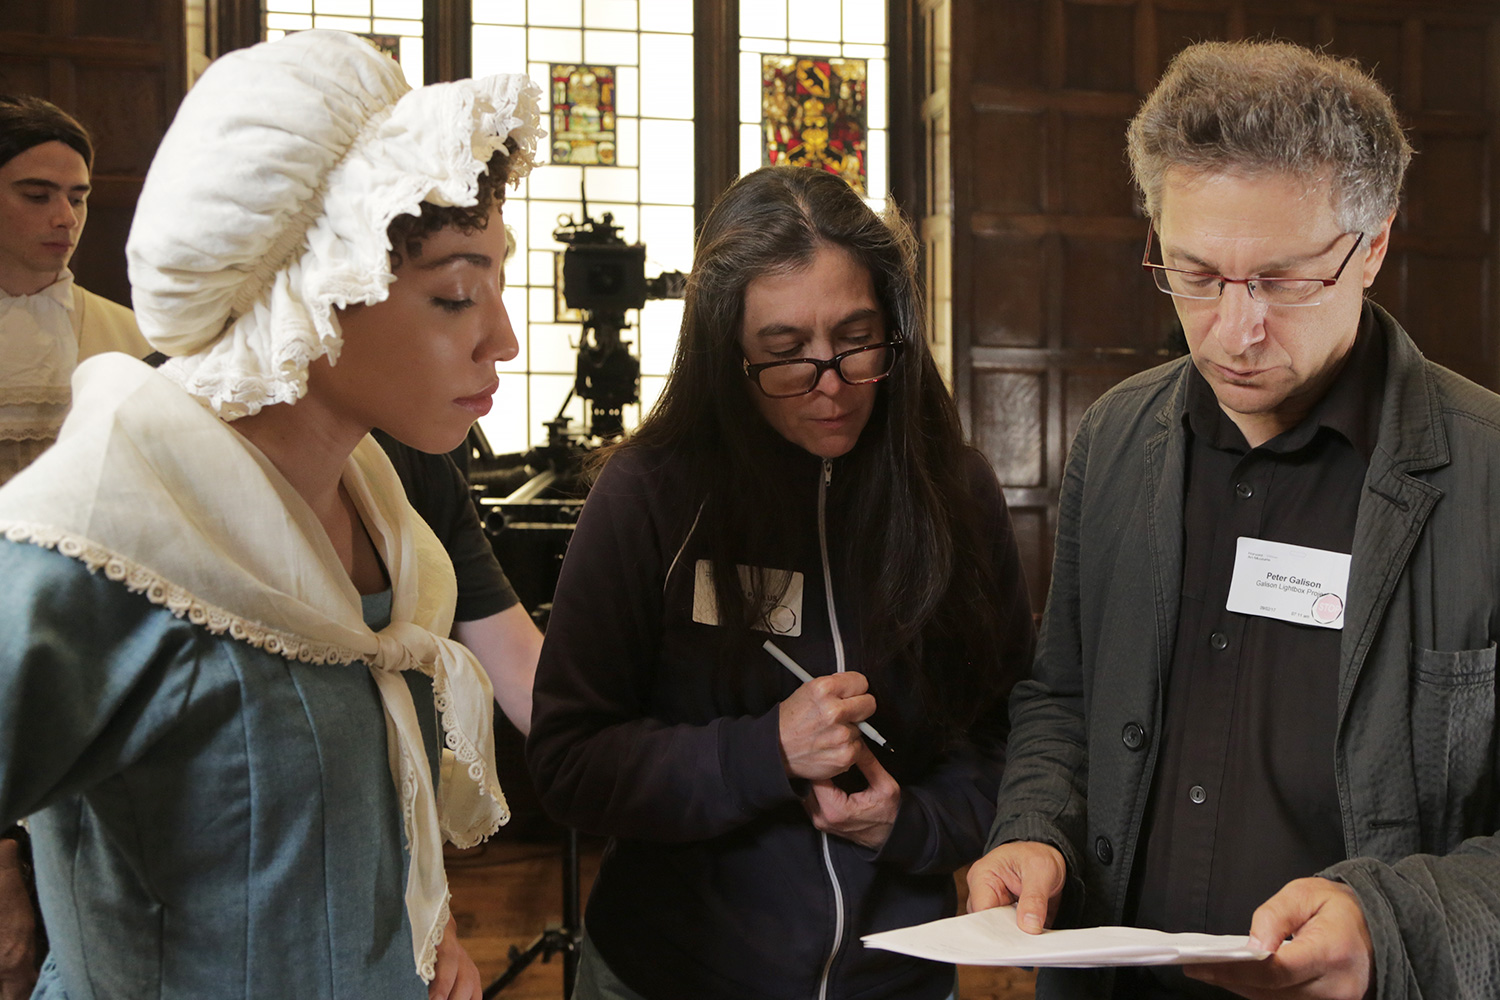 Ashley LaLonde, left, consults with Diane Paulus, center, the Terrie and Bradley Bloom Artistic Director of the American Repertory Theater, and Peter Galison, the Joseph Pellegrino University Professor and faculty director of the Collection of Historical Scientific Instruments at Harvard University, during filming of No More, America.